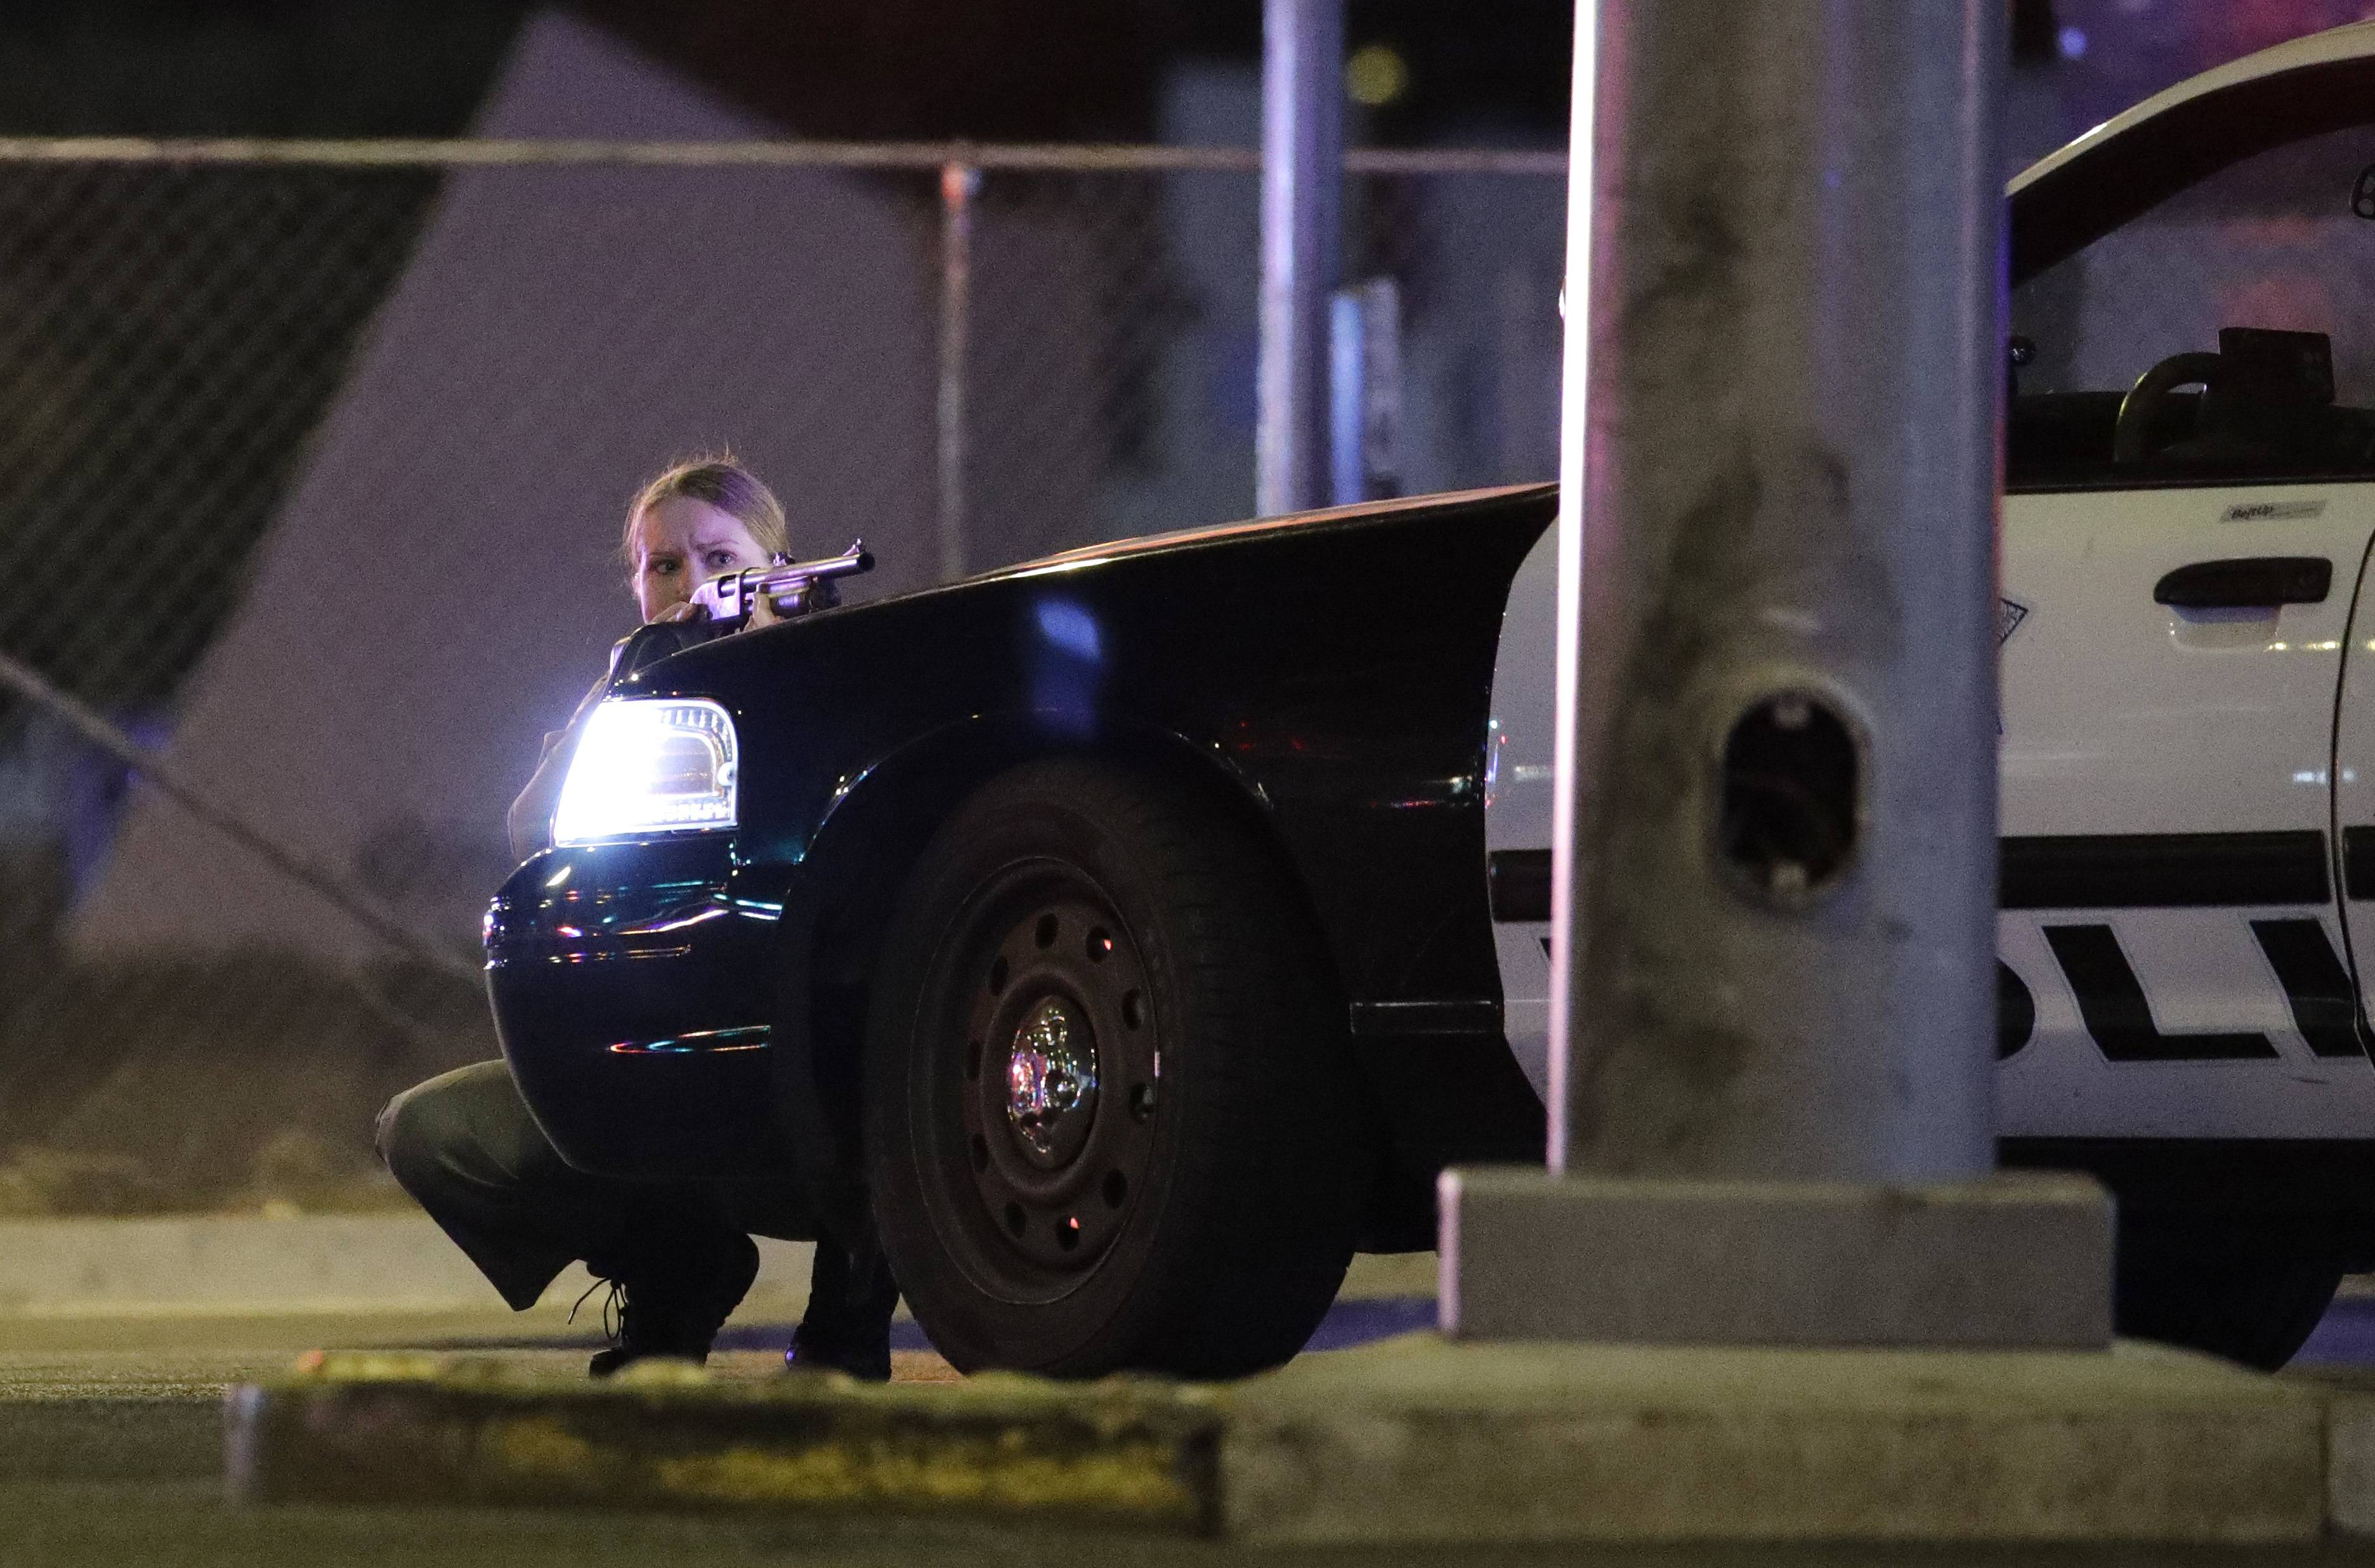 A police officer takes cover behind a police vehicle during a shooting near the Mandalay Bay resort and casino on the Las Vegas Strip, Sunday, Oct. 1, 2017, in Las Vegas.